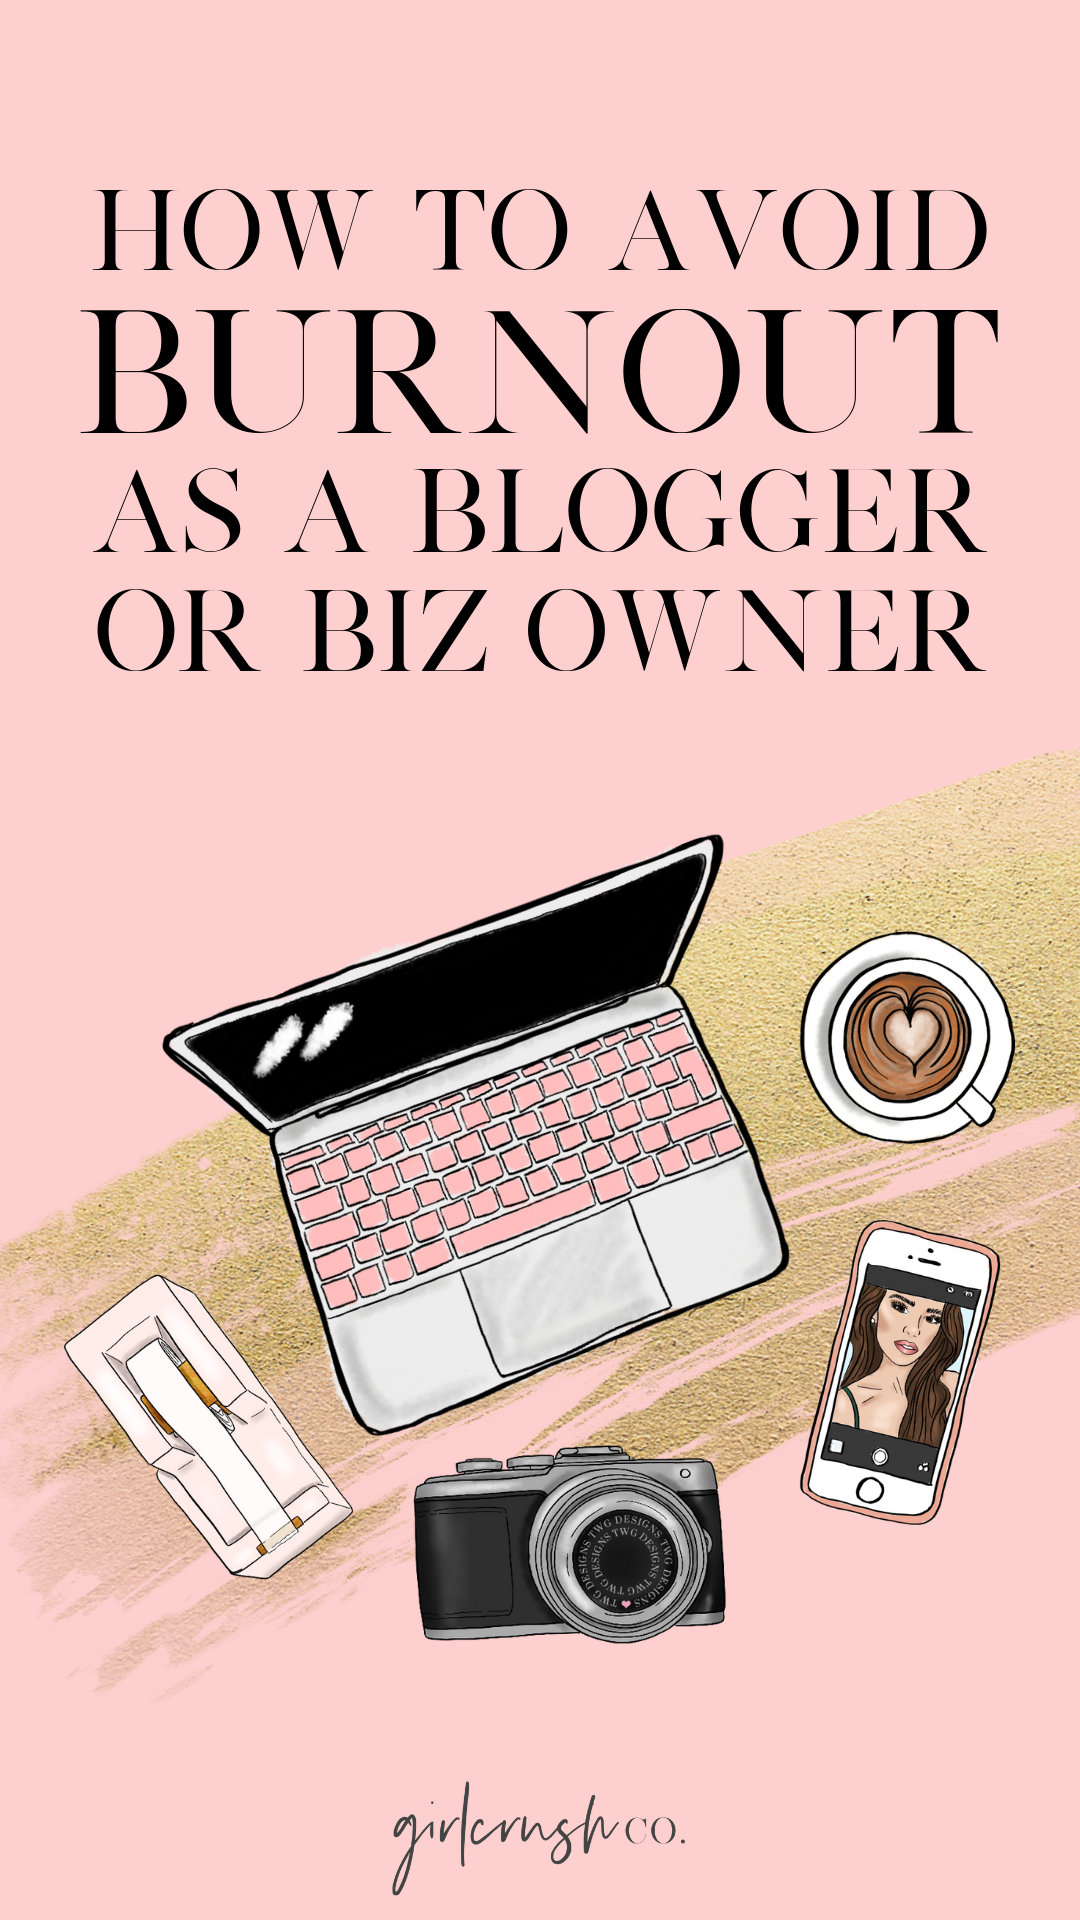 avoid burnout as a blogger or business owner